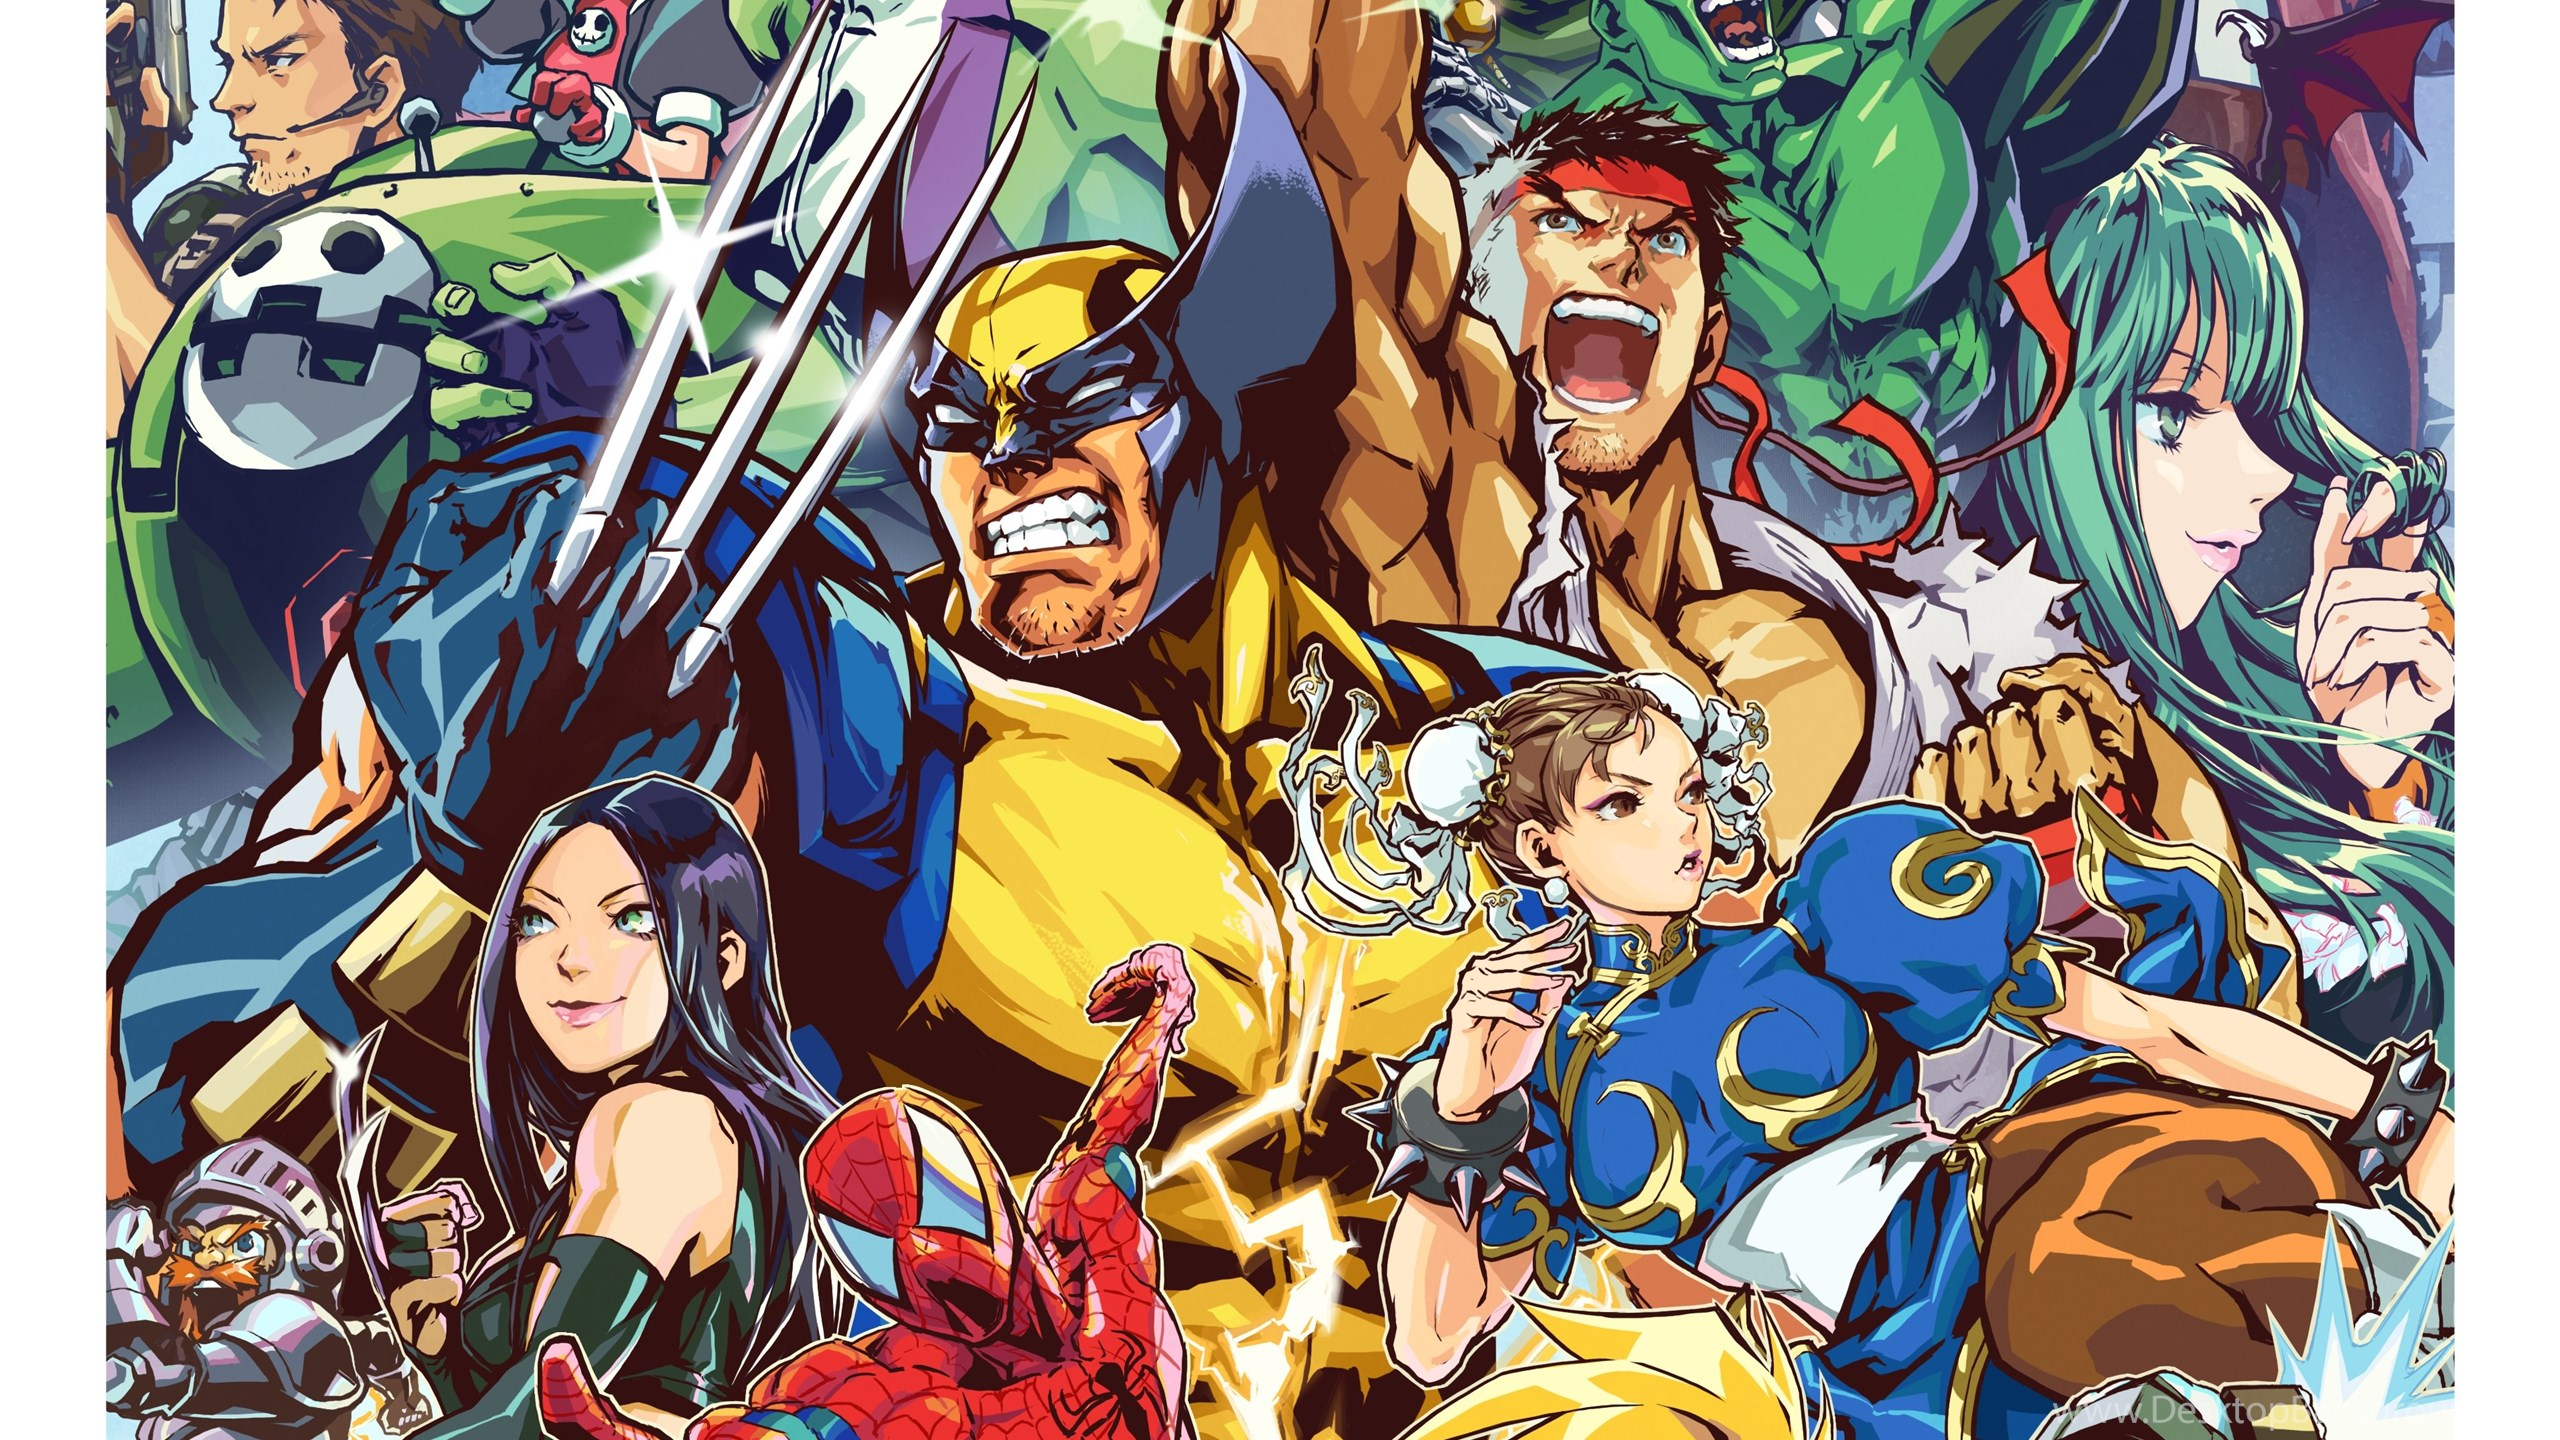 Iphone X Wallpaper For Note 8 13 Quality Marvel Vs Capcom Wallpapers Video Games